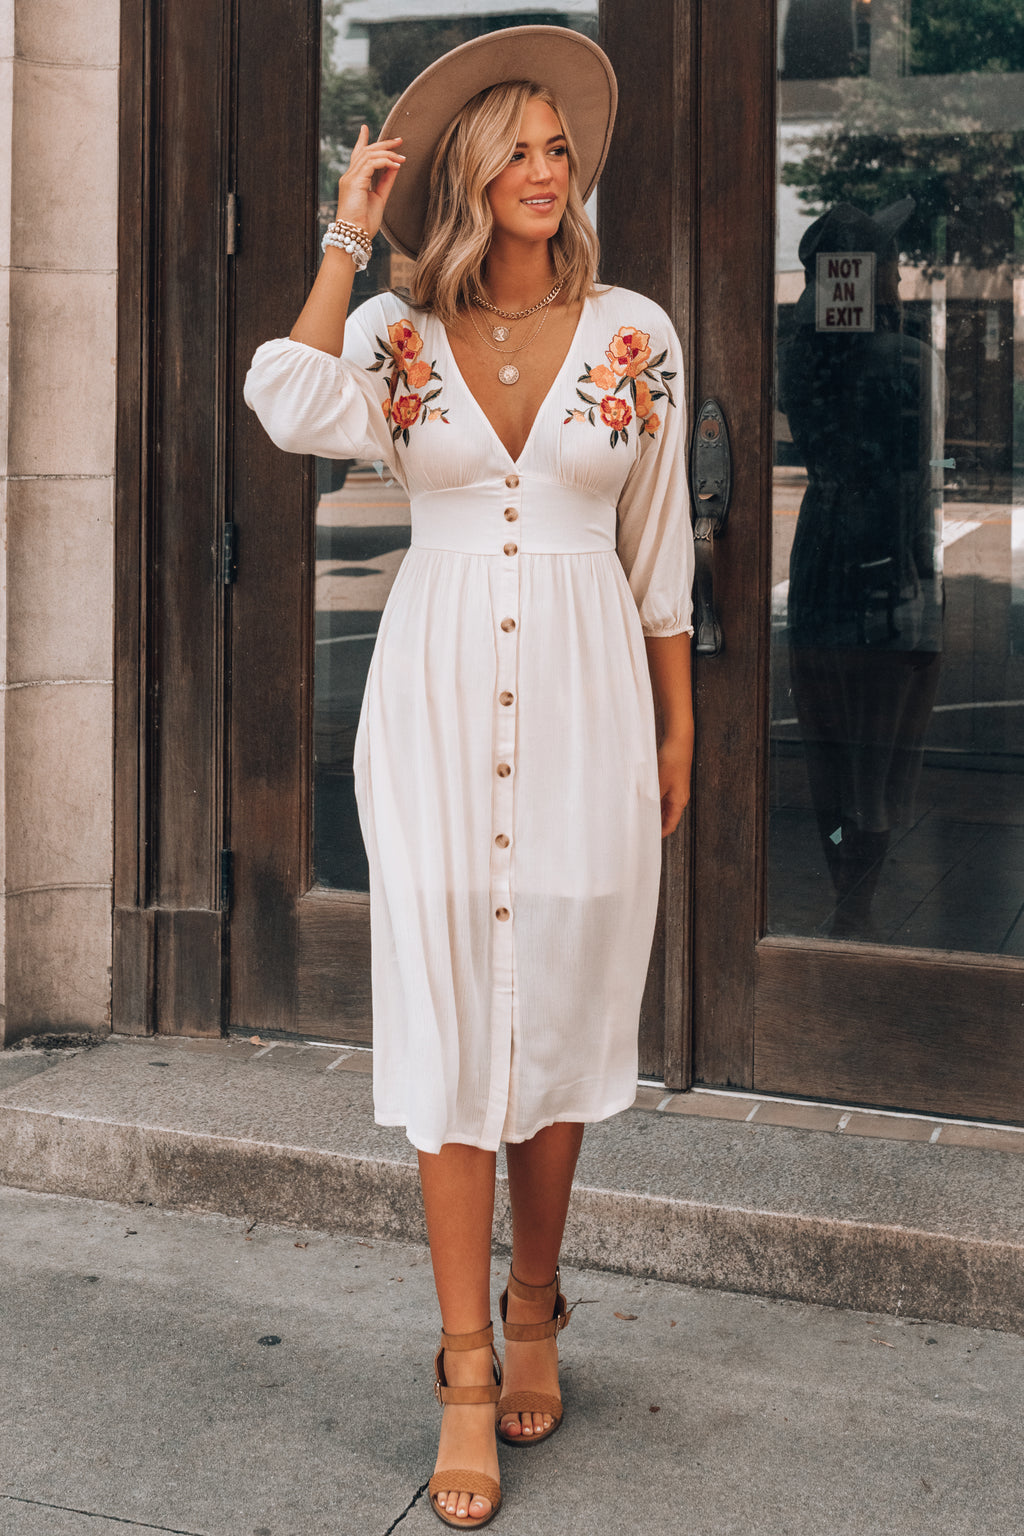 Golden Valley Embroidered Dress PRE-ORDER Ships Mid August